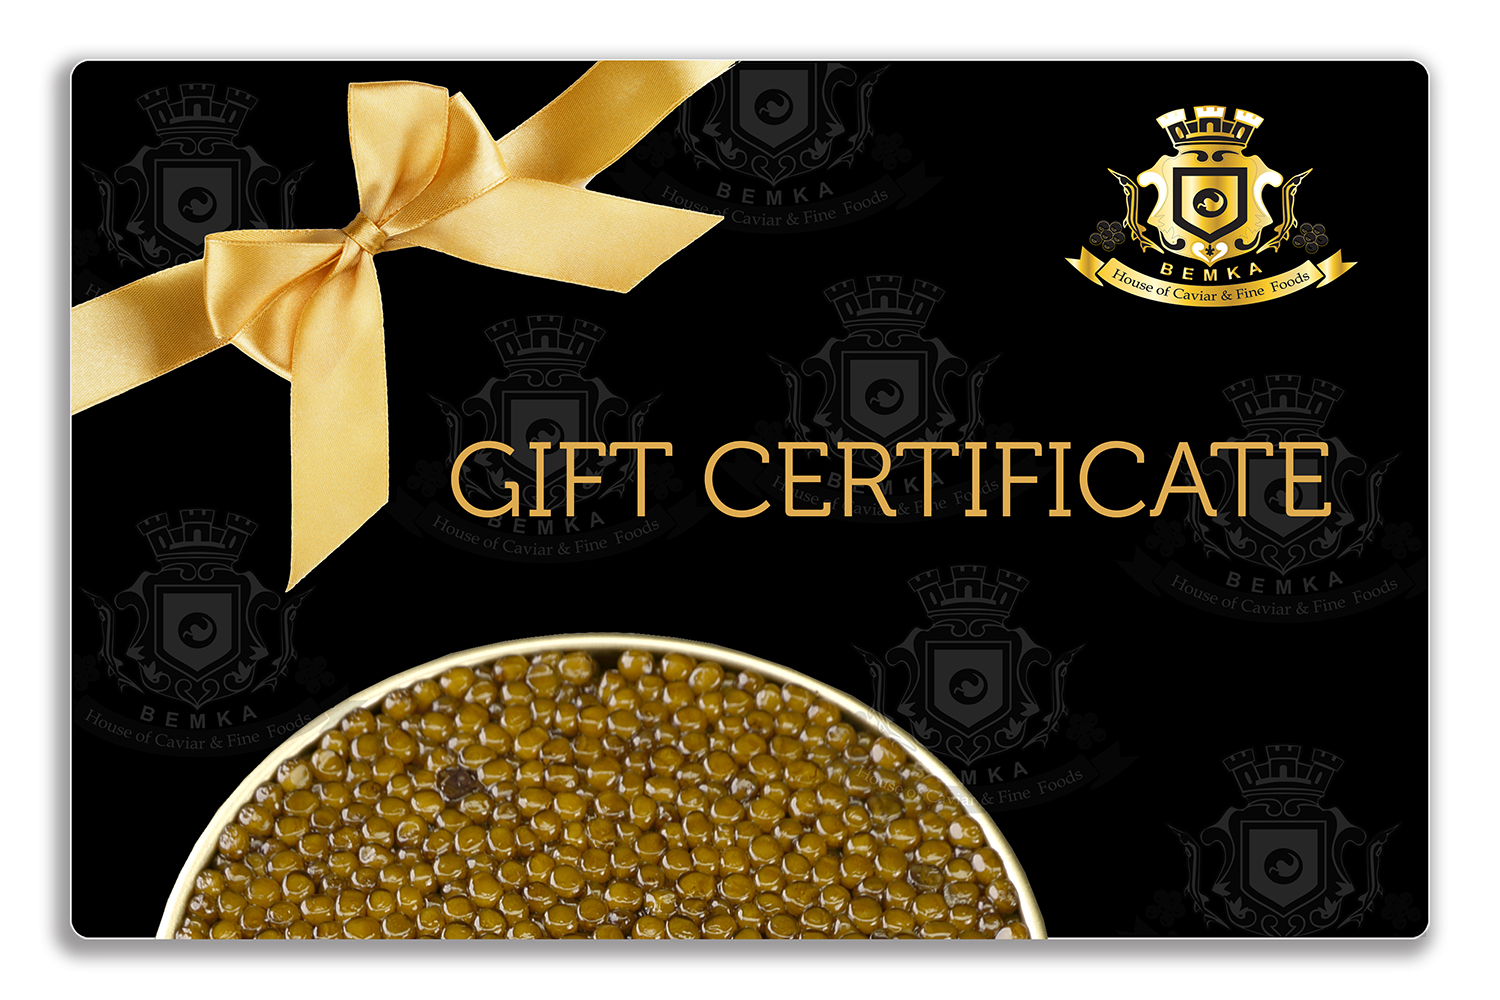 Gift Certificate THUMBNAIL